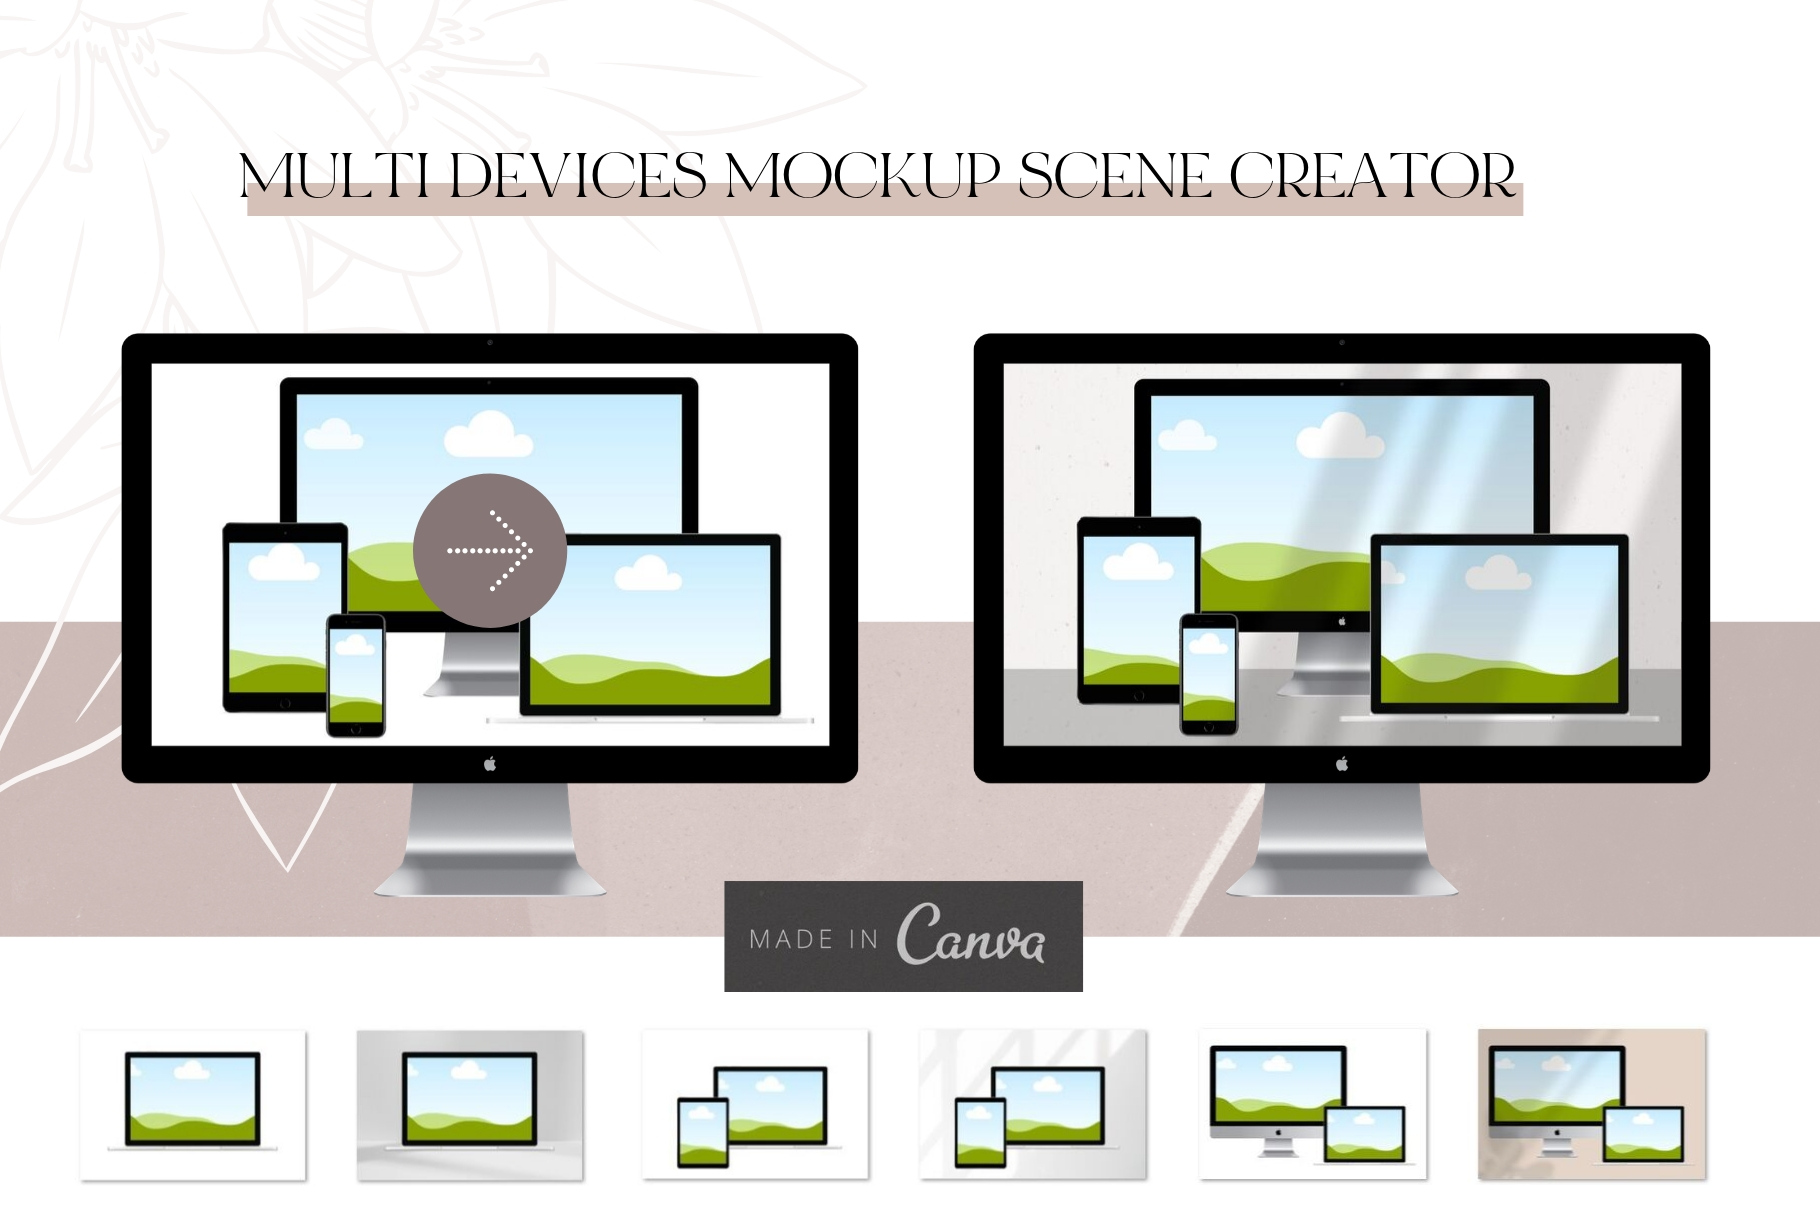 Canva Devices Mockup Scene Creator example image 4